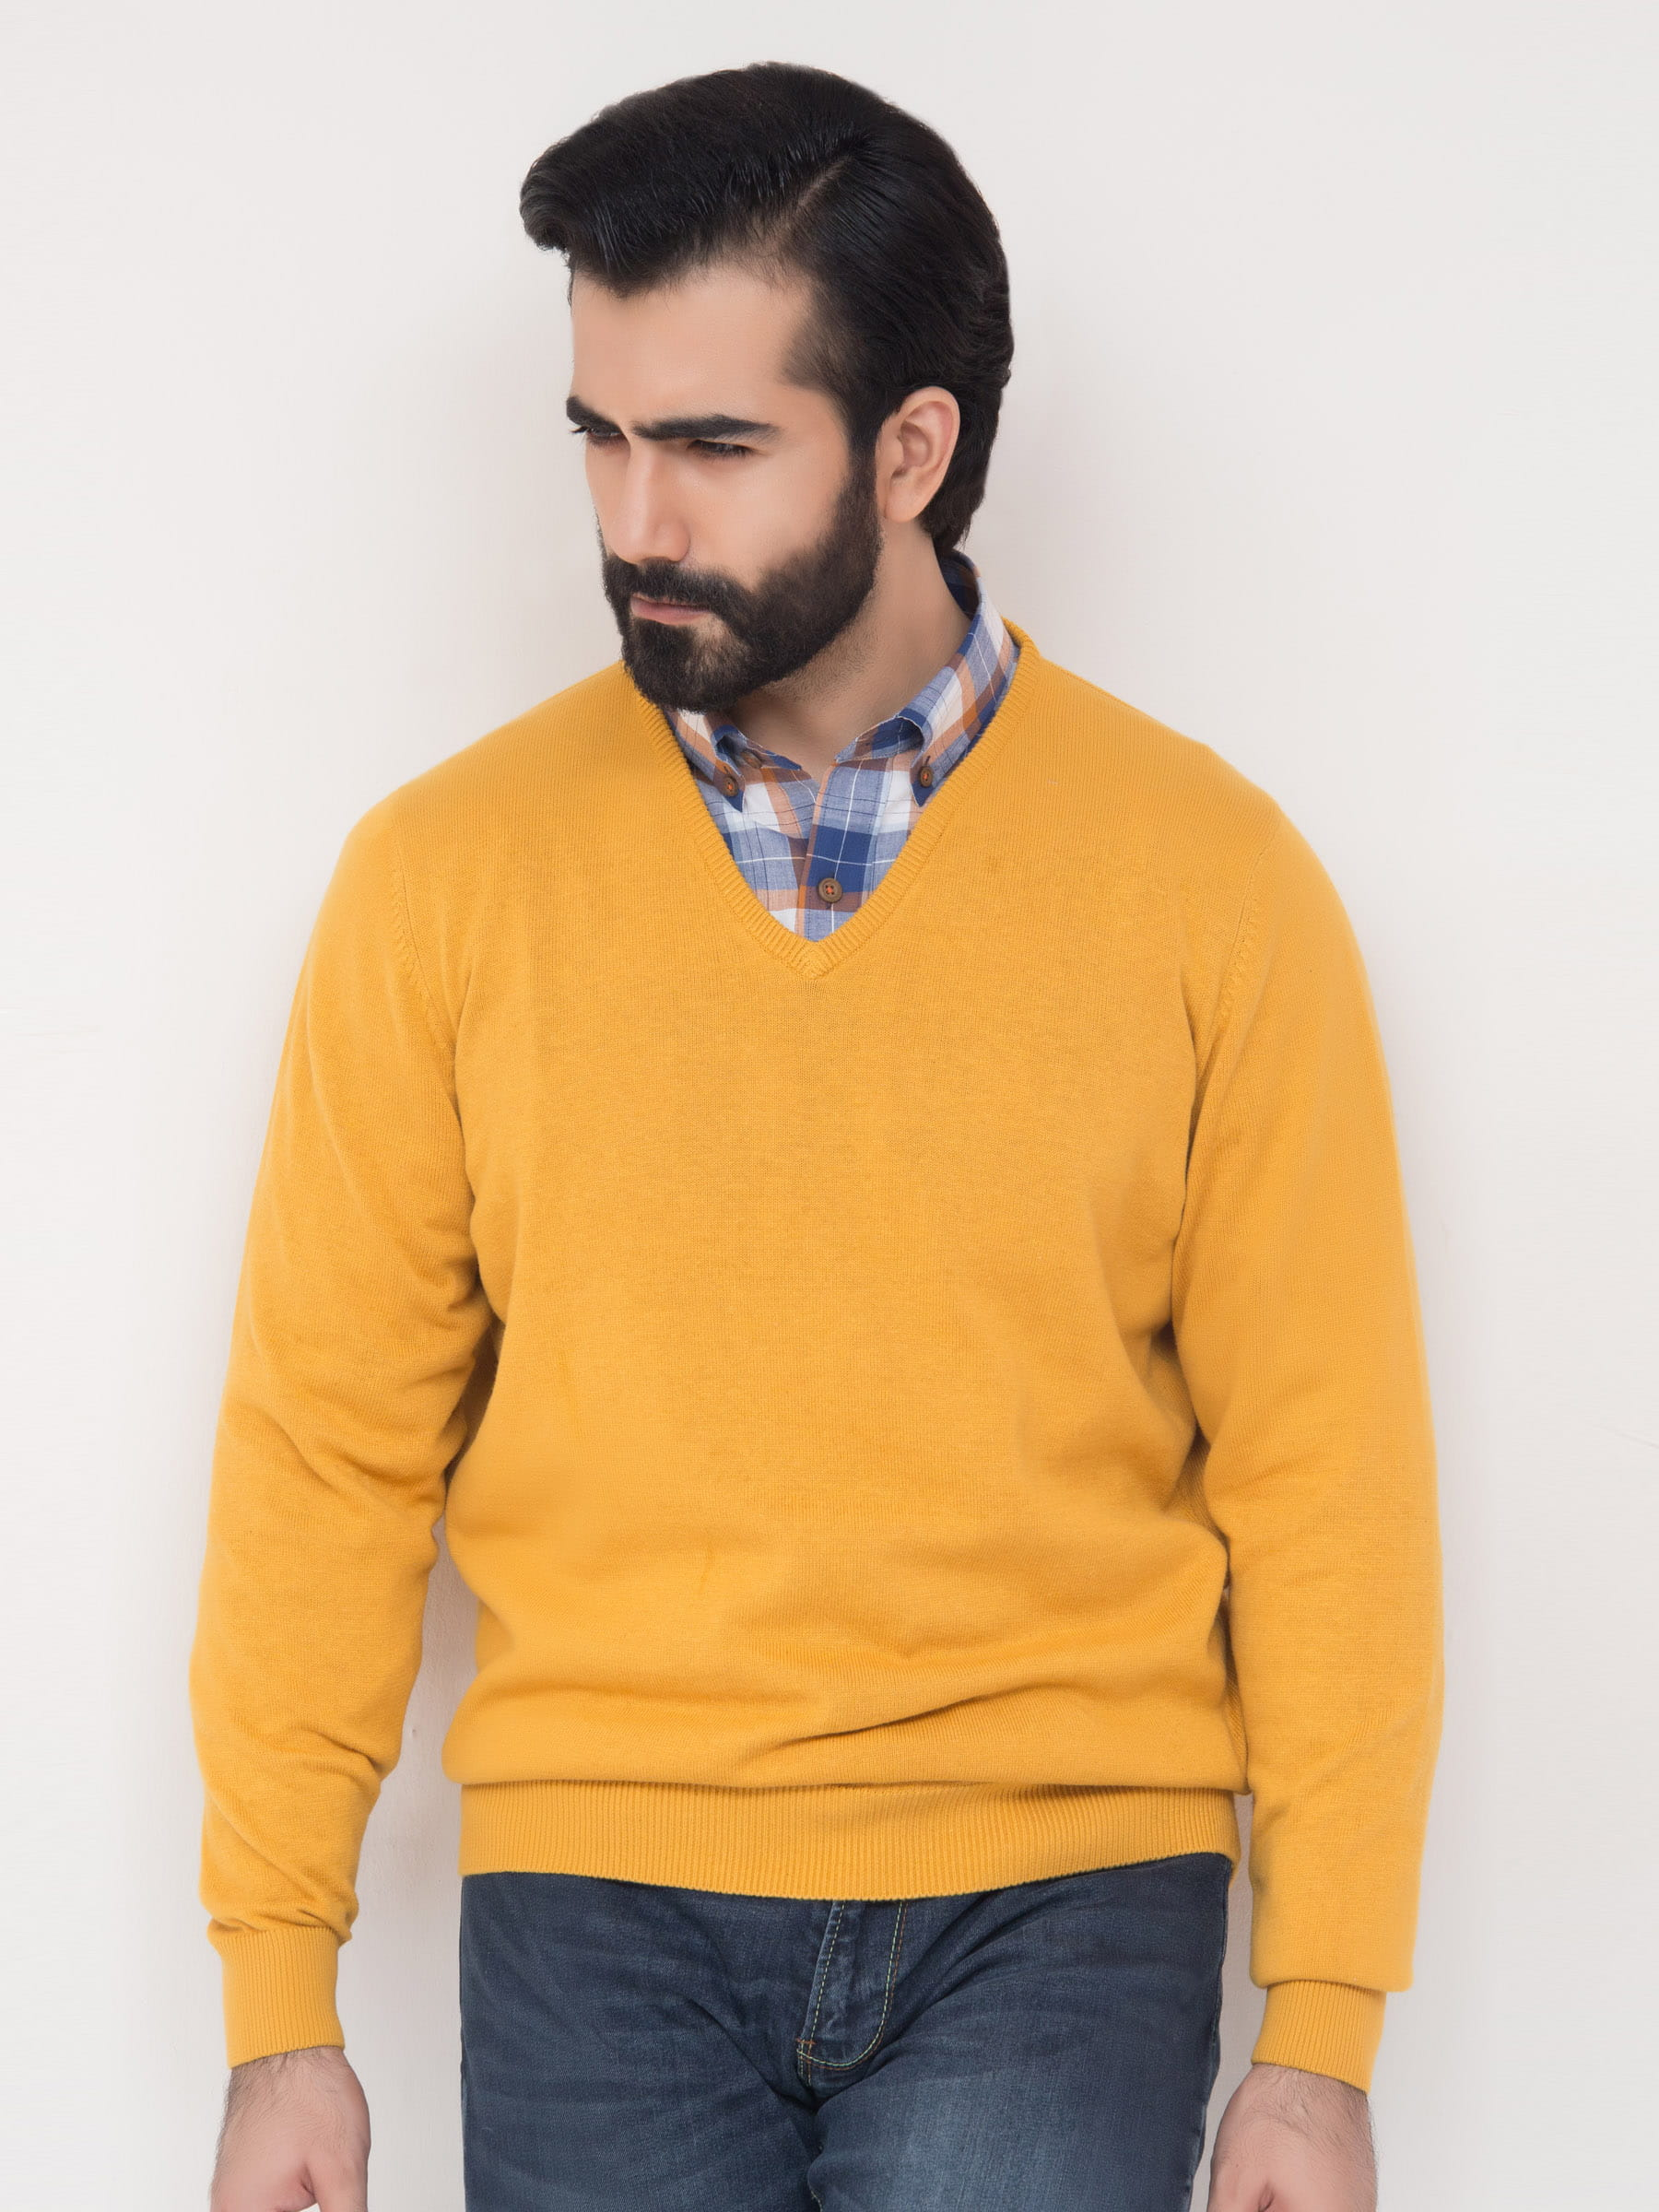 Mens Yellow V Neck Sweater